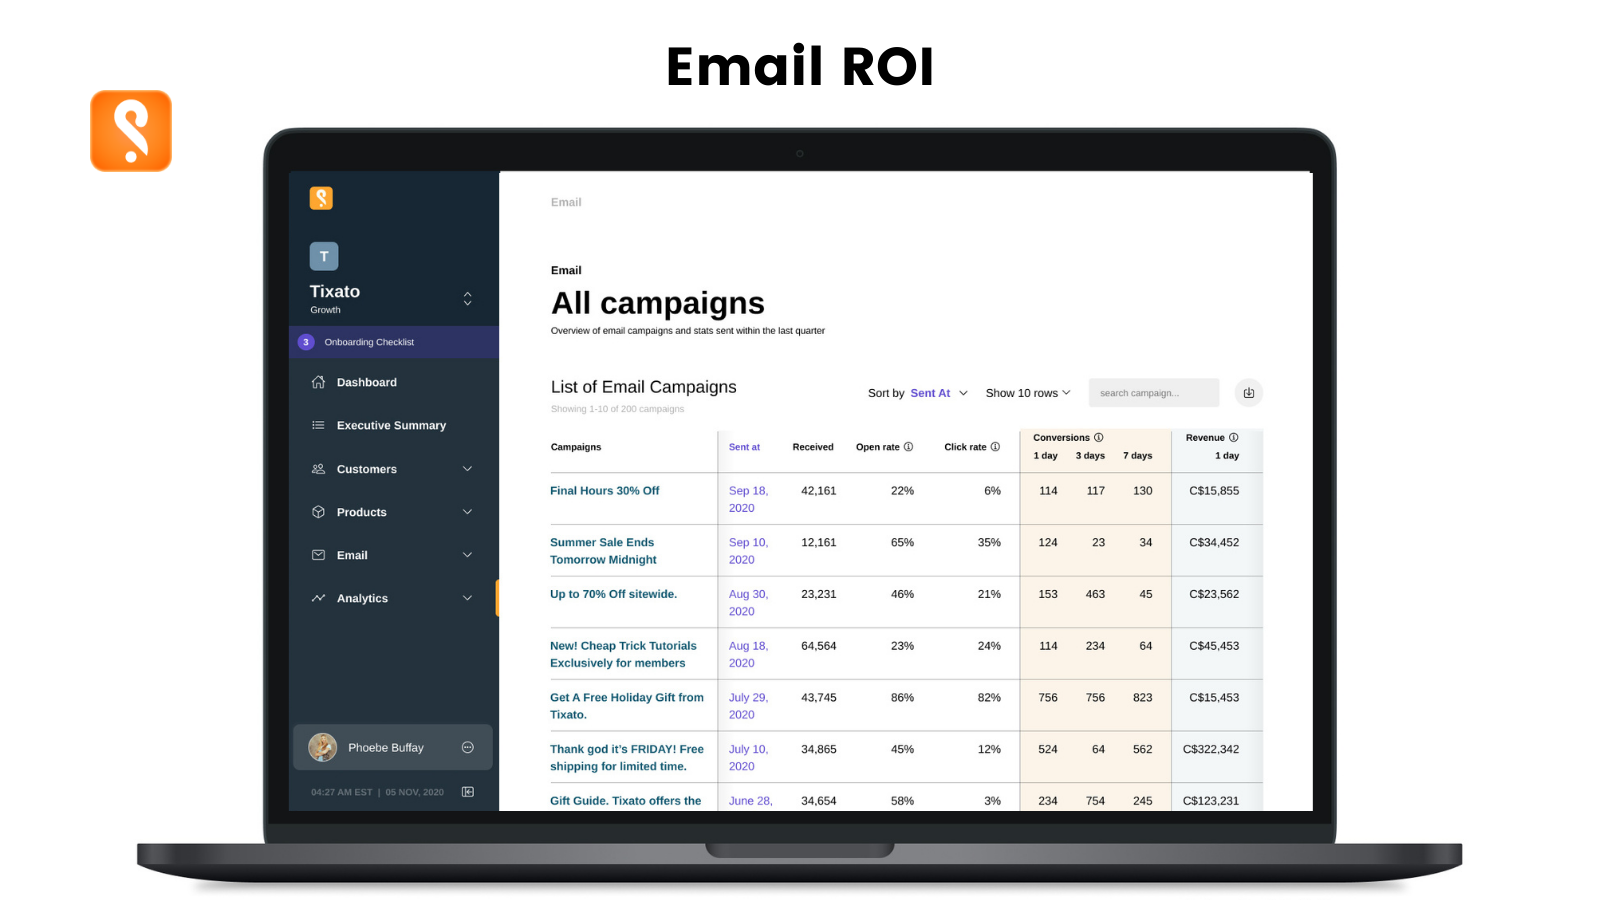 Analyze email campaign performance with 7-day and 30-day ROI